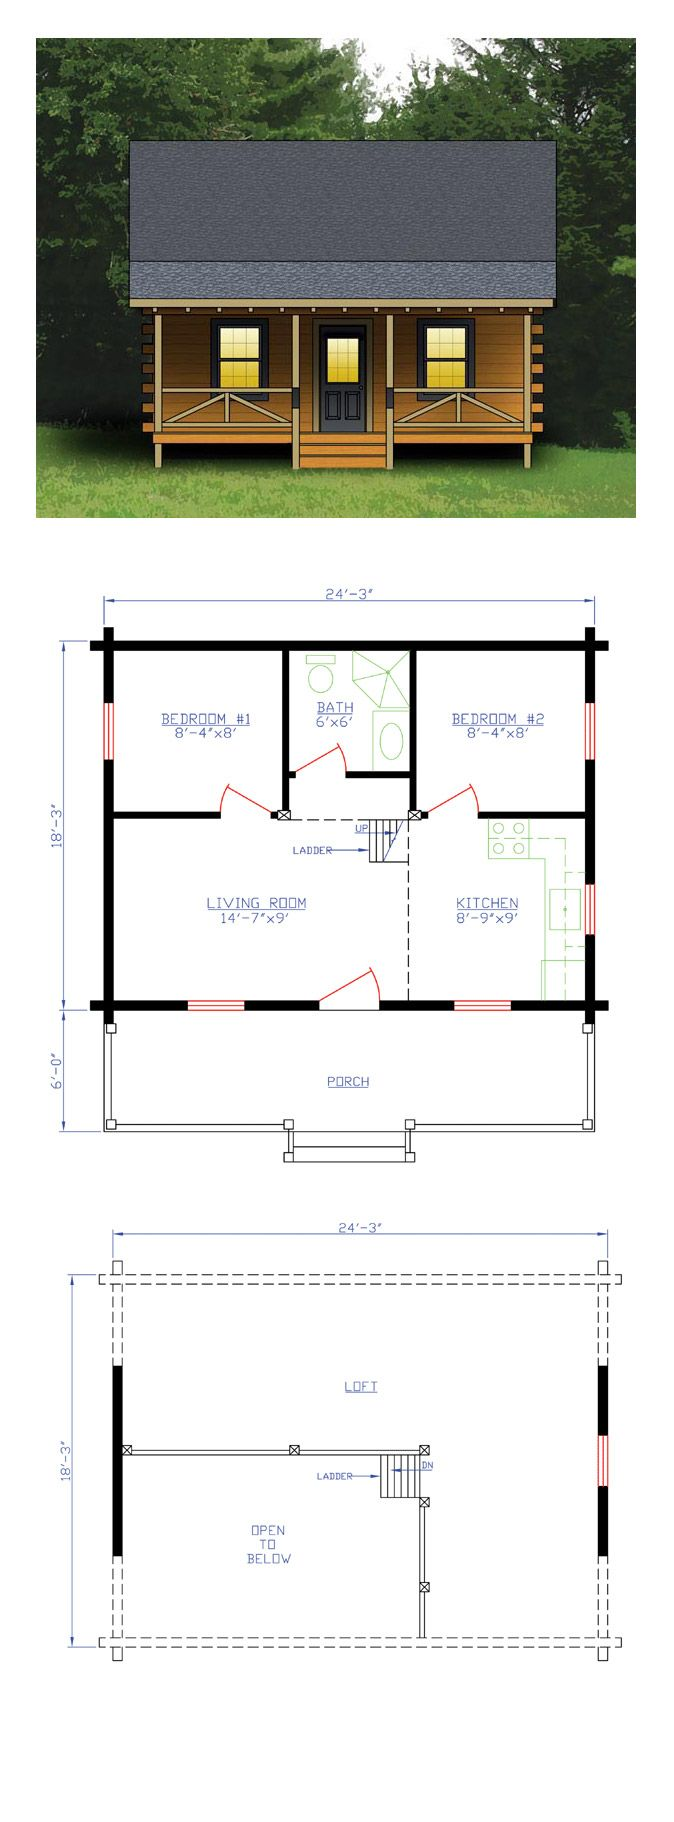 Log home plan total living area sq ft bedrooms and bath loghome houseplan also house pinterest logs rh